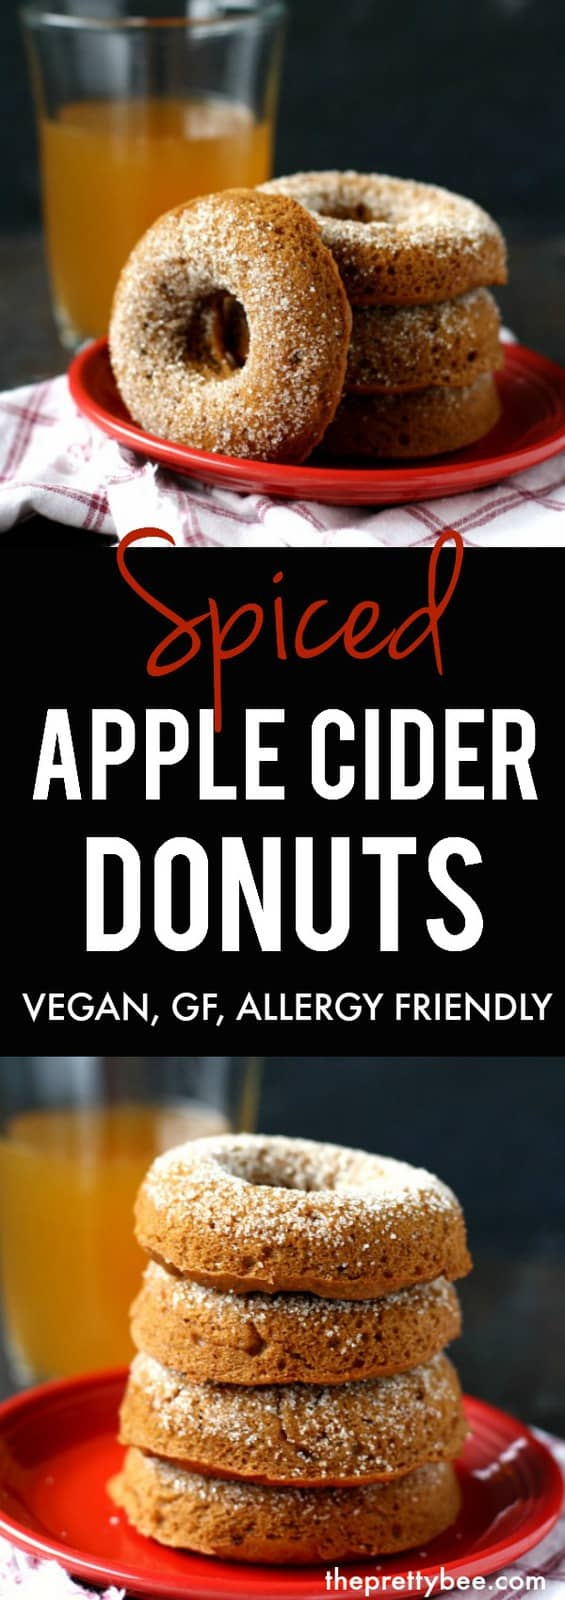 Nothing says fall like fresh baked donuts! These are extra delicious with apple cider and spices in the batter. A perfect treat for fall! Gluten free and vegan. #autumn #donuts #vegan #plantbased #gf #glutenfree #dairyfree